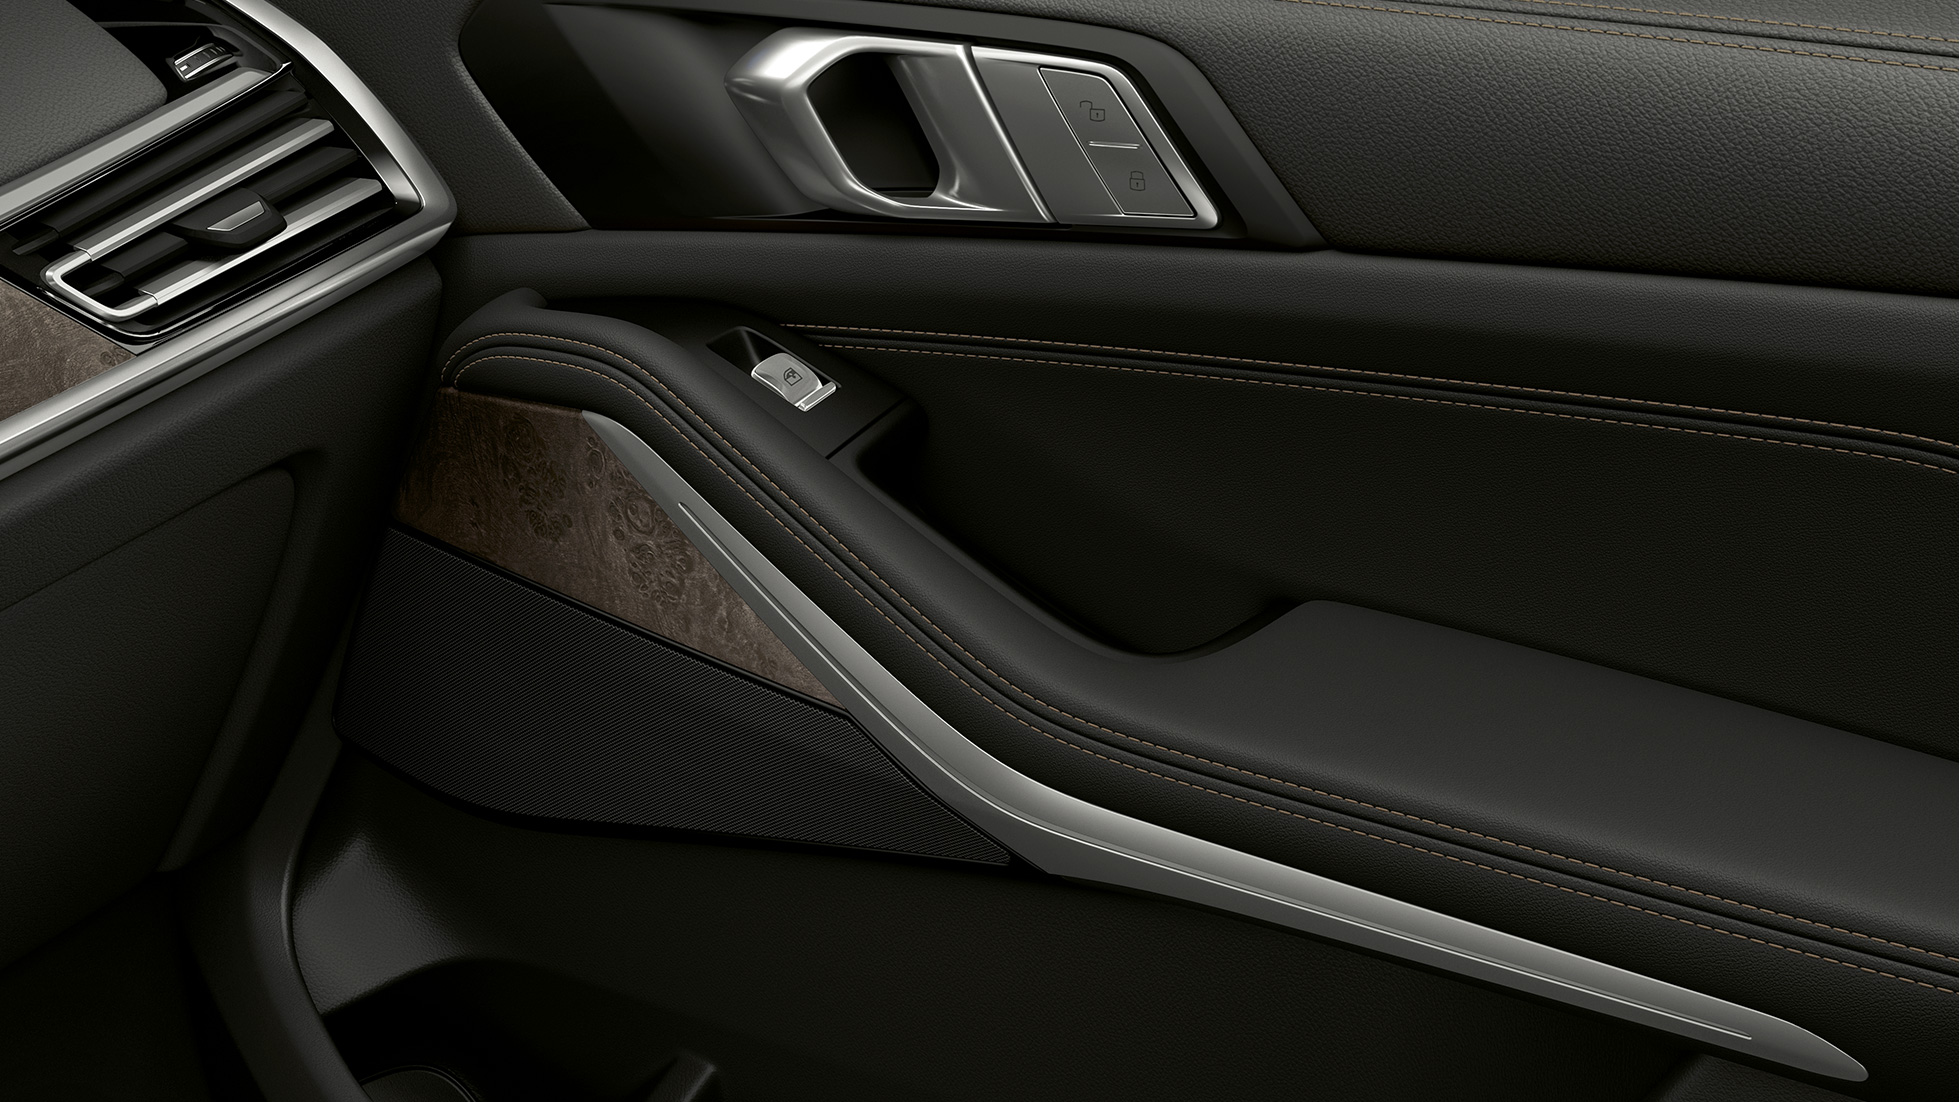 Close-up of the inner door of the BMW X7